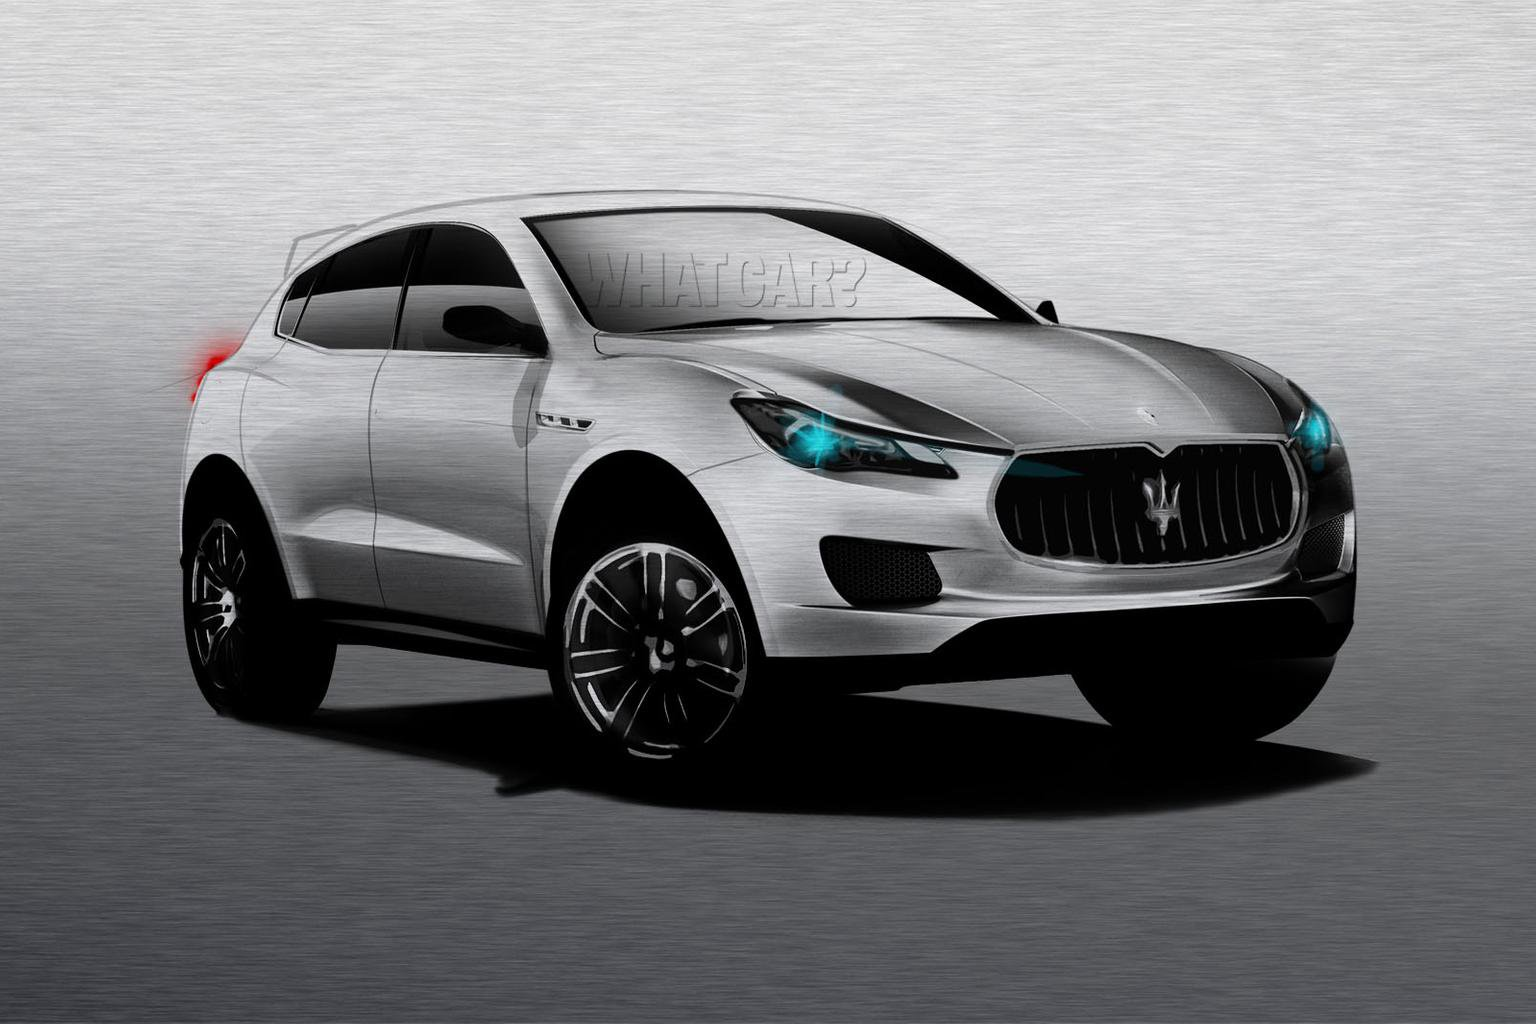 2015 Maserati Levante - on-sale date, engines and specification